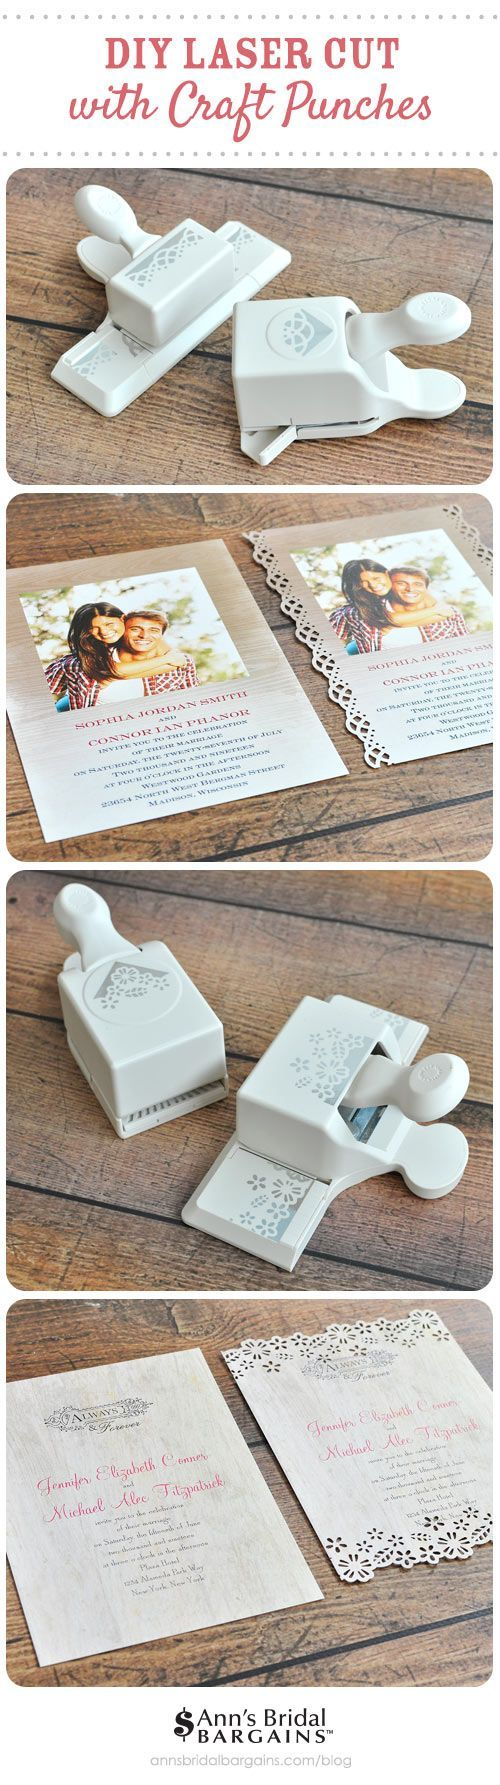 simple diy bridal shower invitations%0A Dress Up Your Invite  How to fake the laser cut look